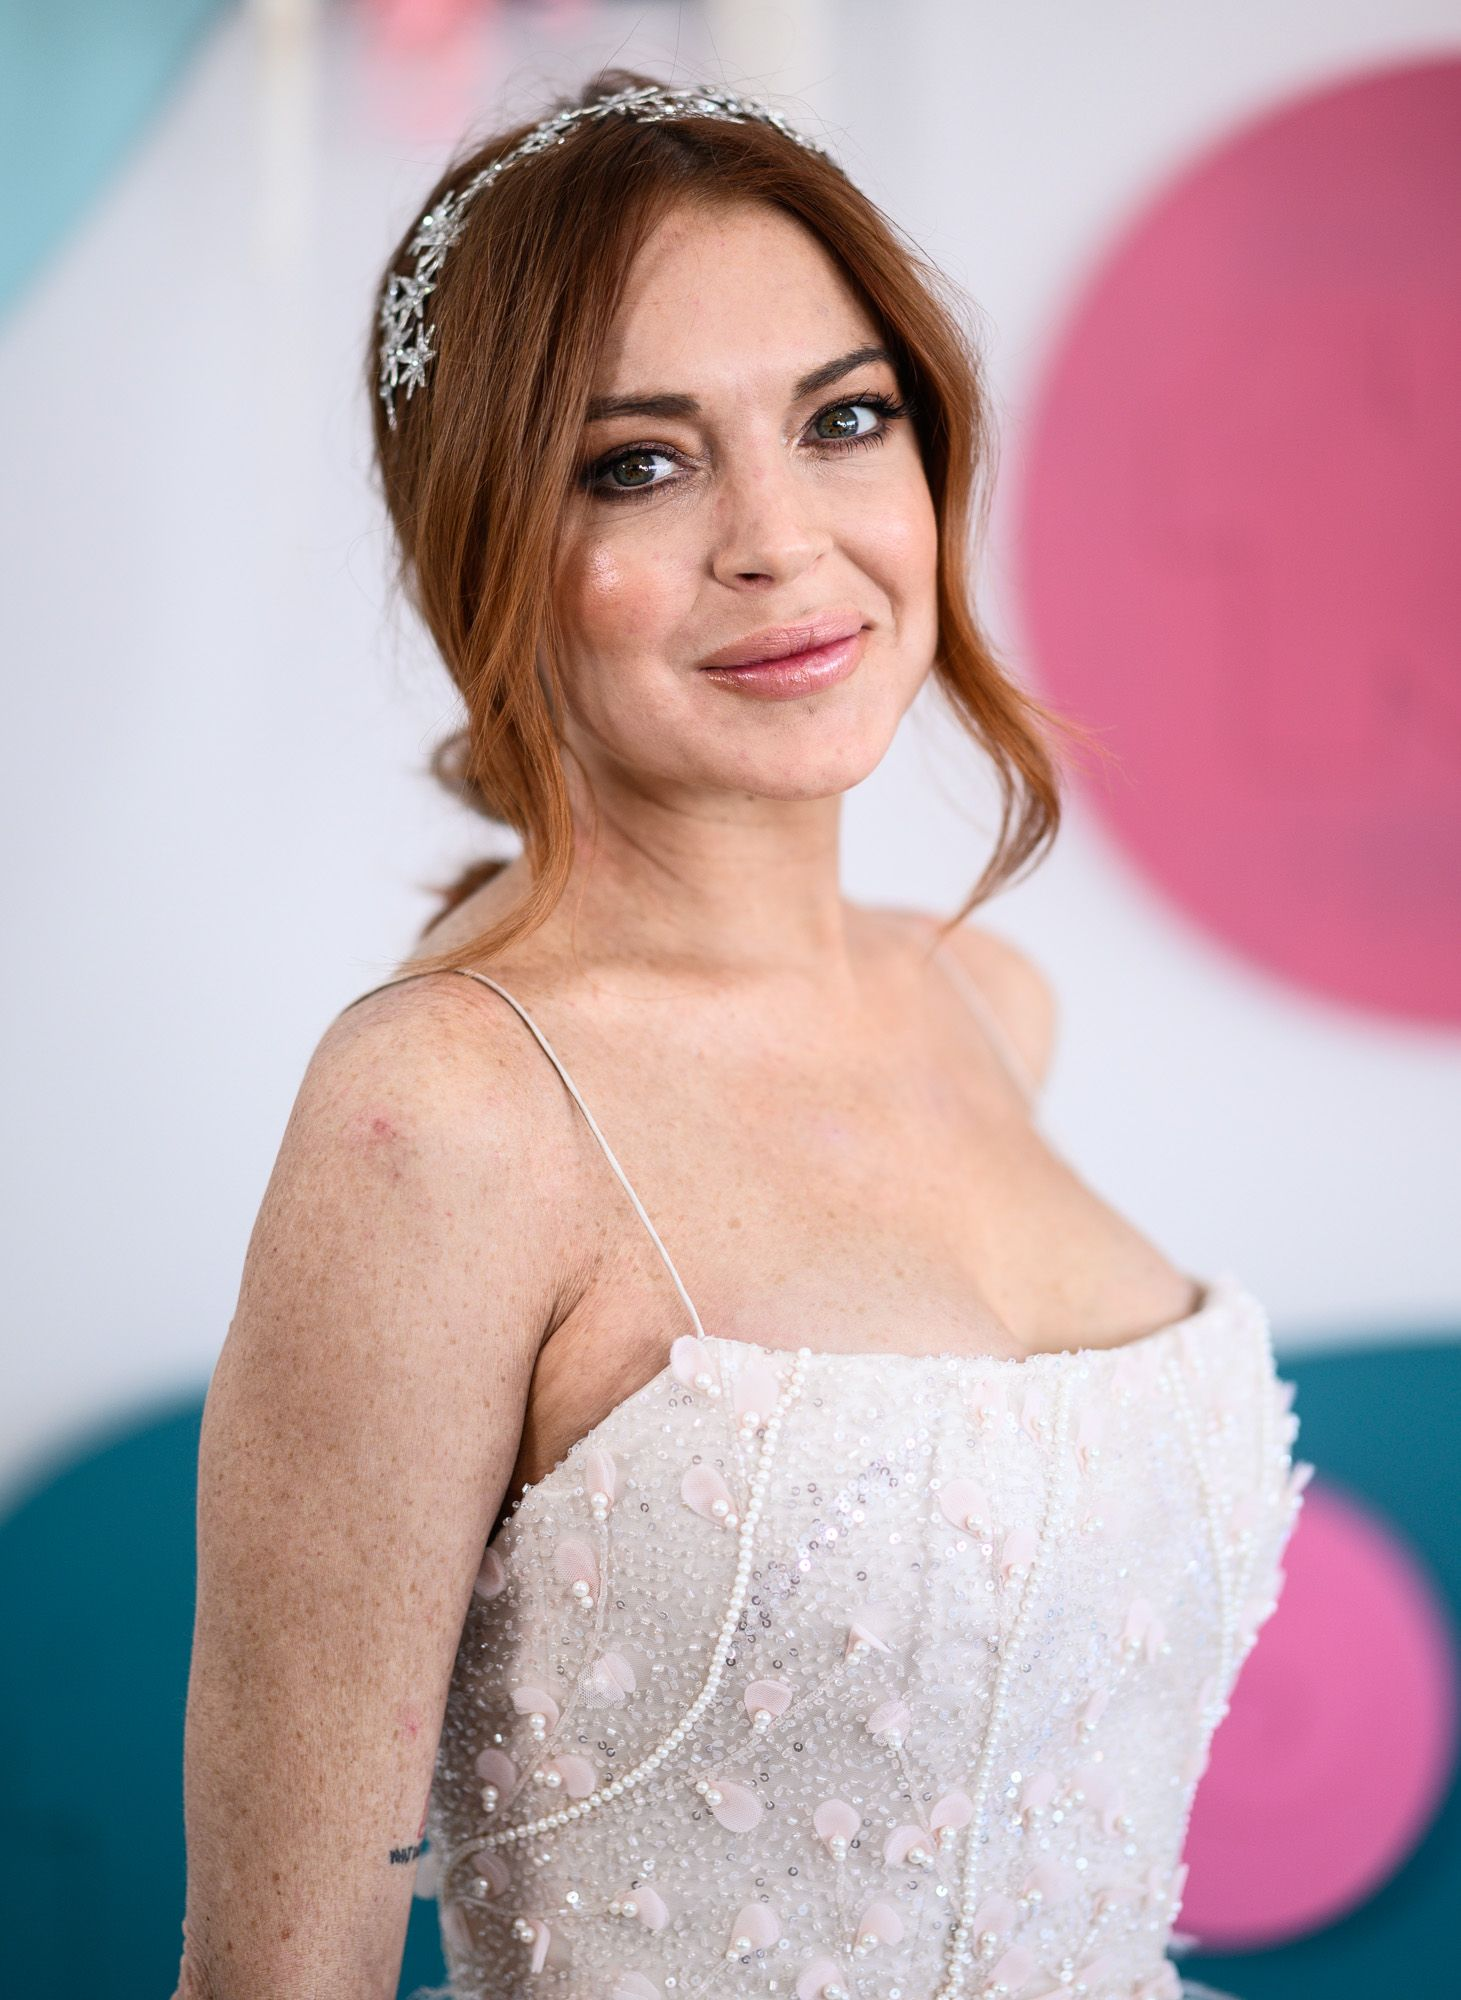 Lindsay Lohan looks captivating in this off-white dress with pink pearl designs.